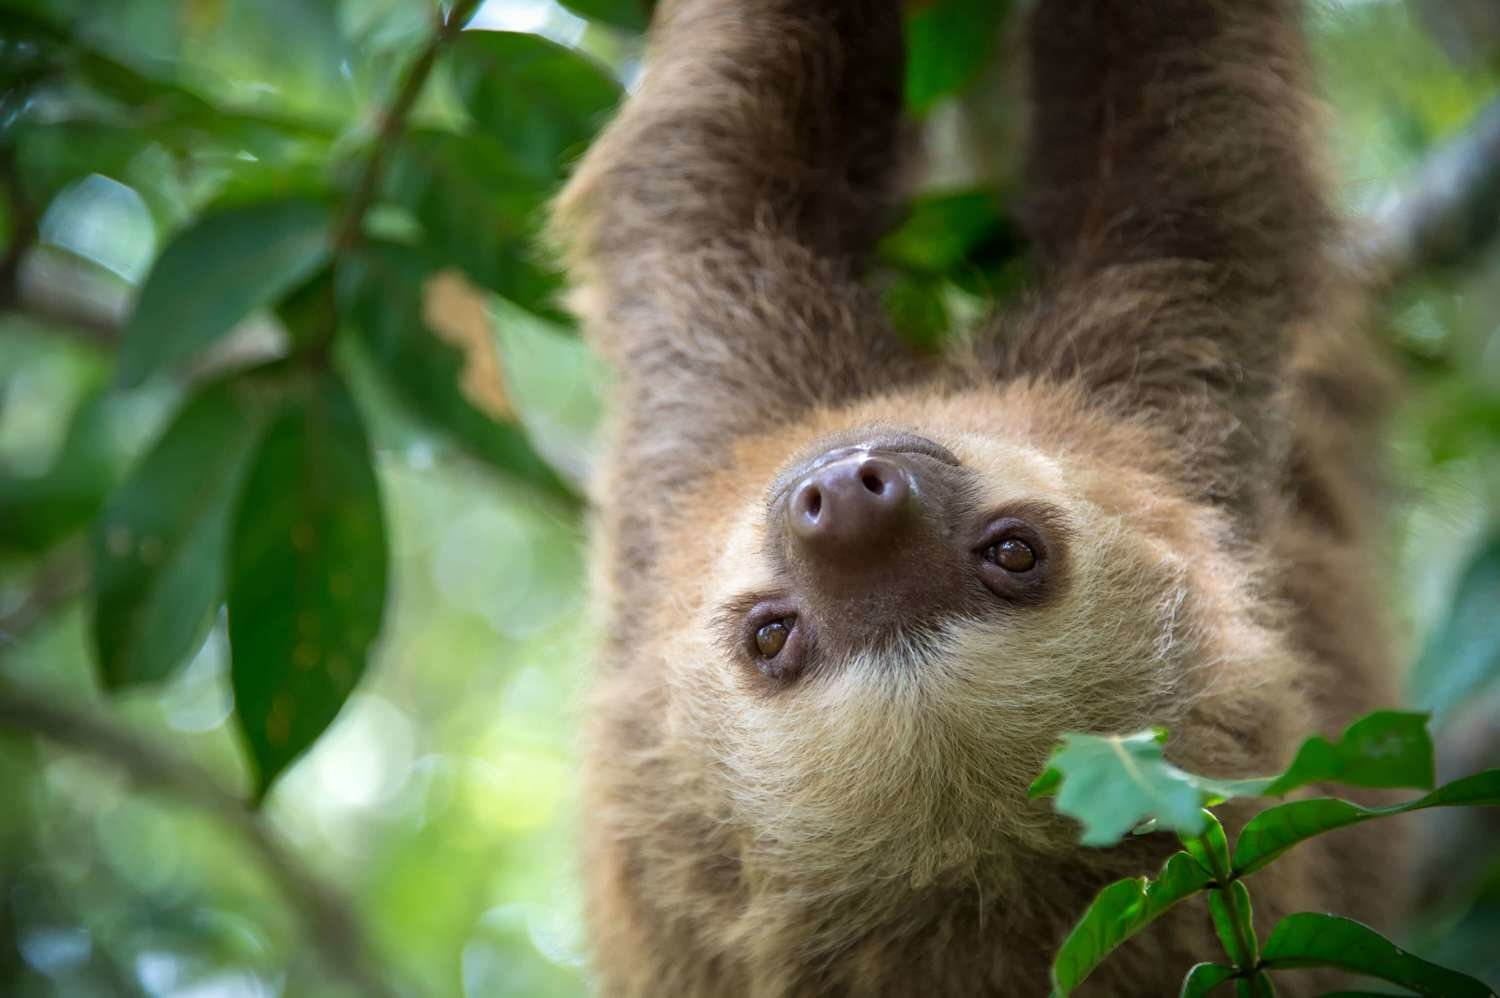 Adopt A Two-Toed Sloth